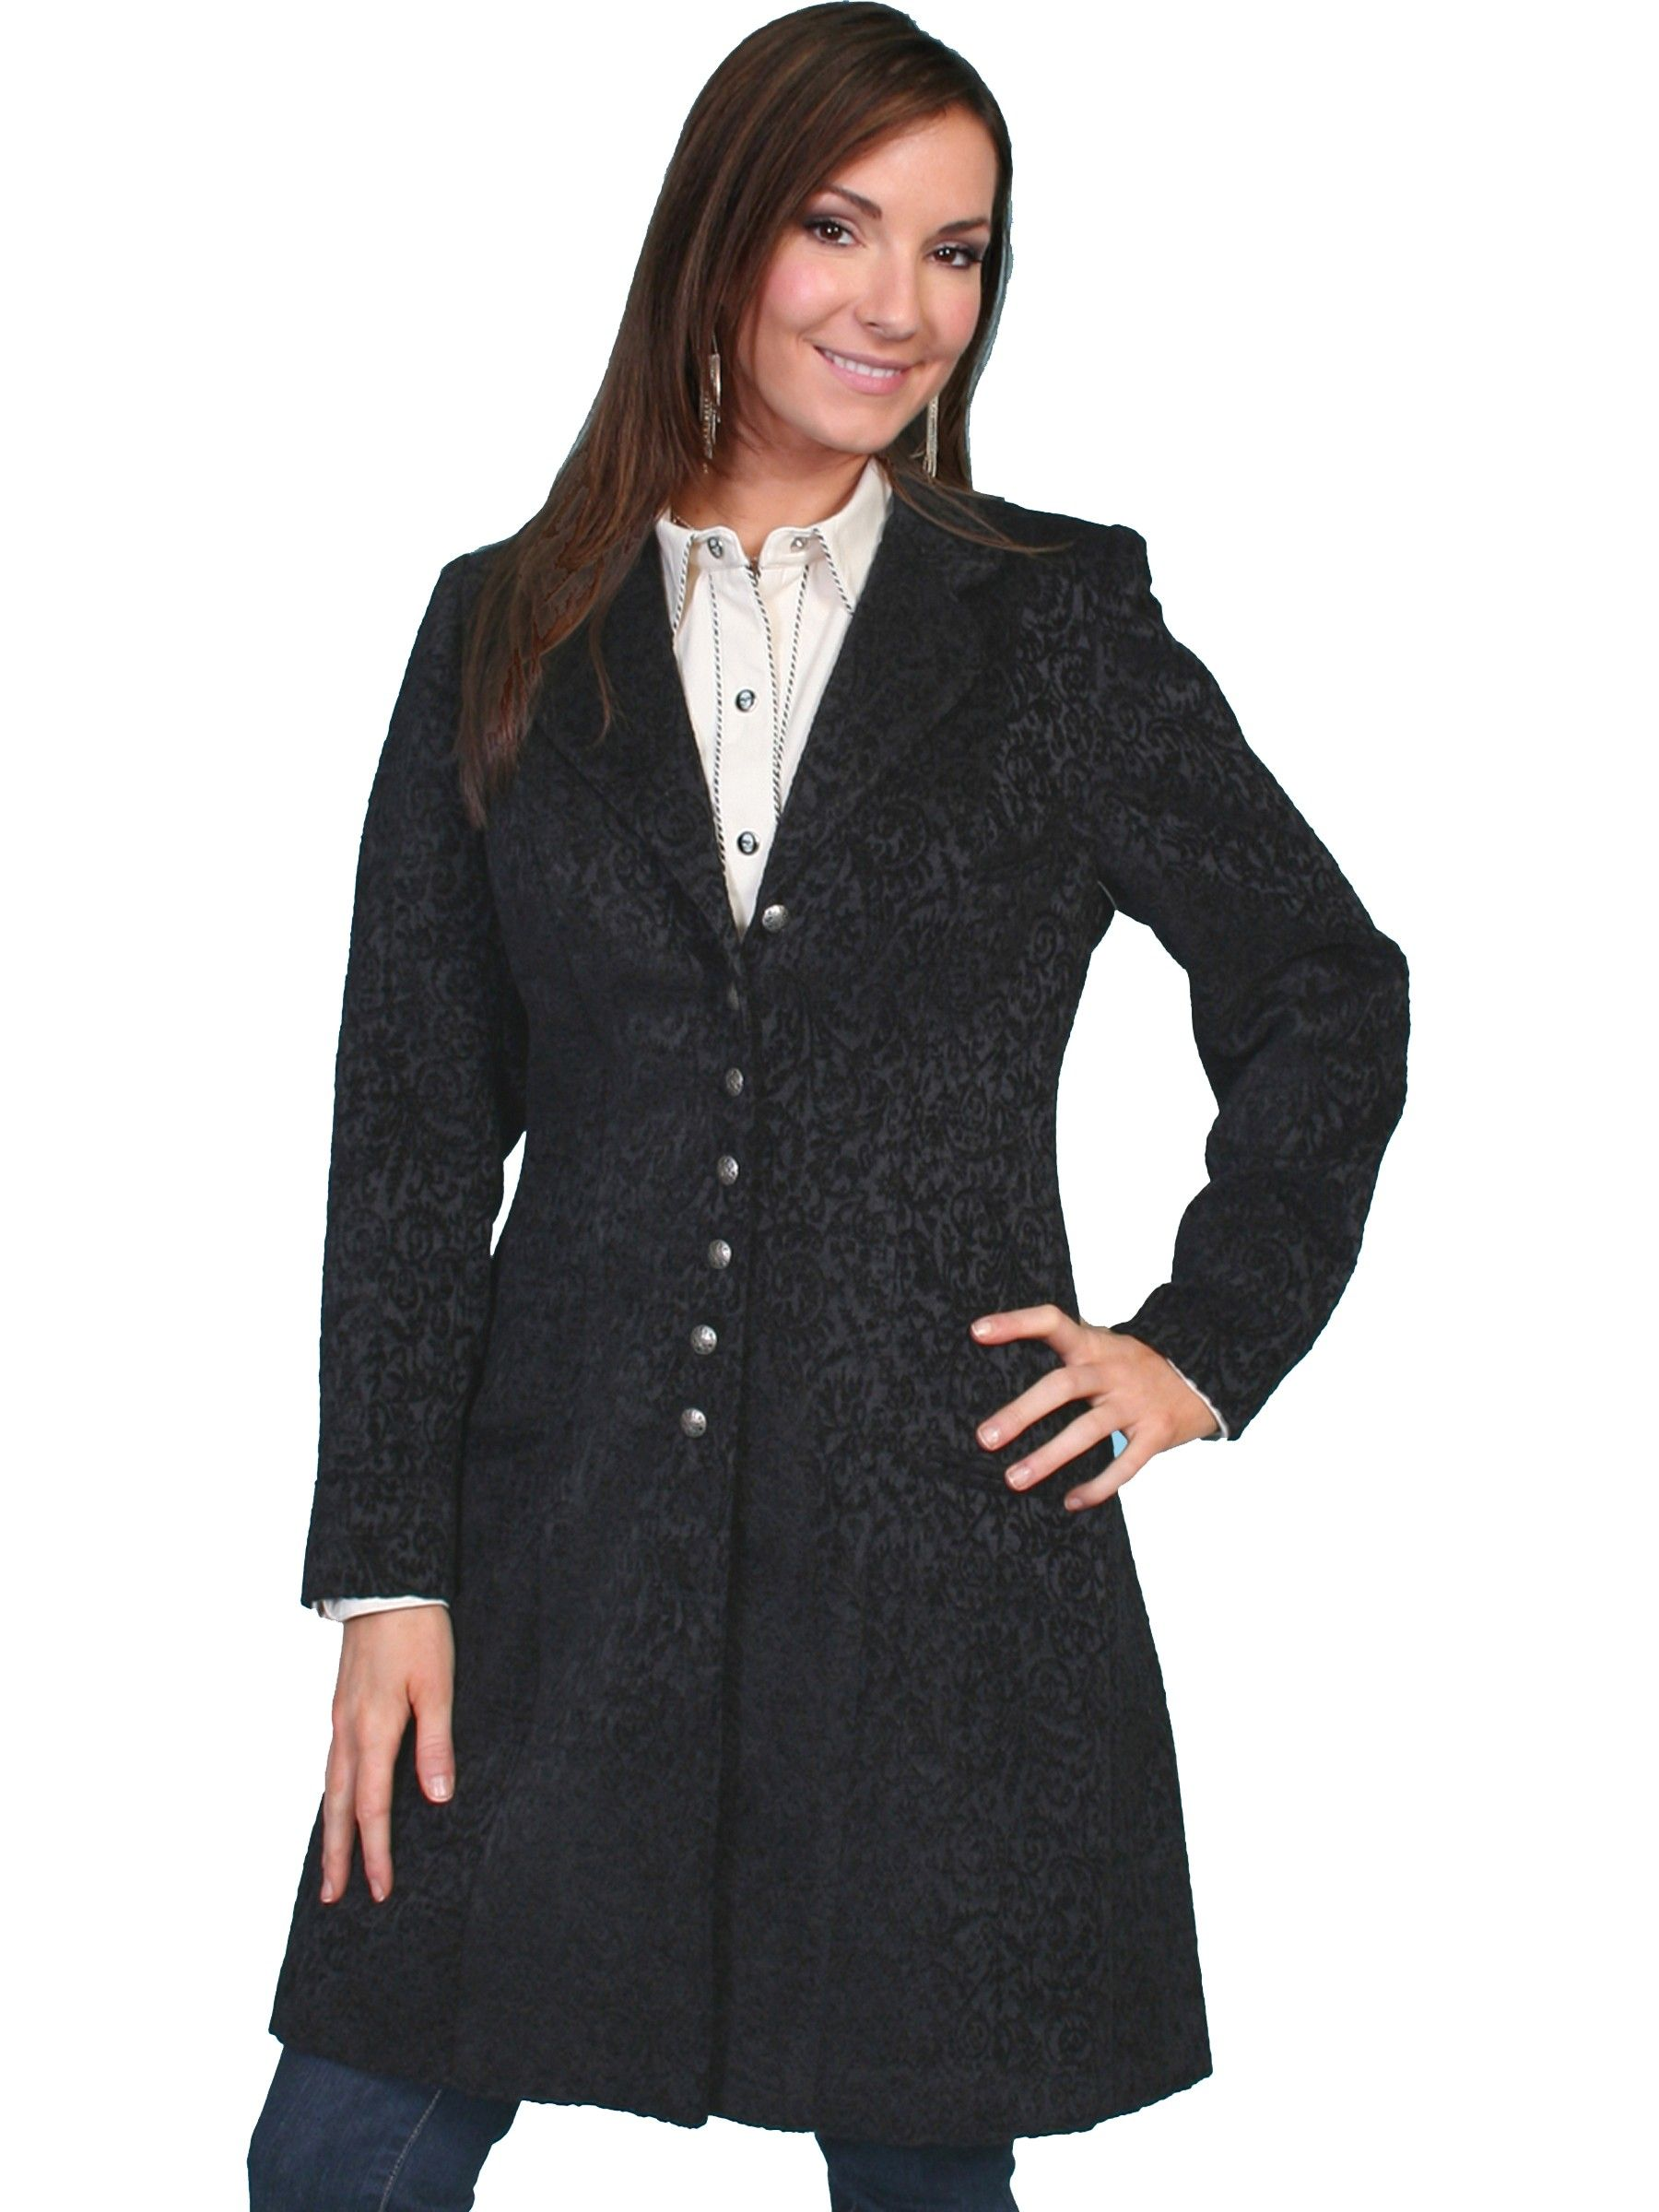 Western Style Chenille Frock Coat In Black Clothes Frock For Women Western Fashion [ 2400 x 1800 Pixel ]